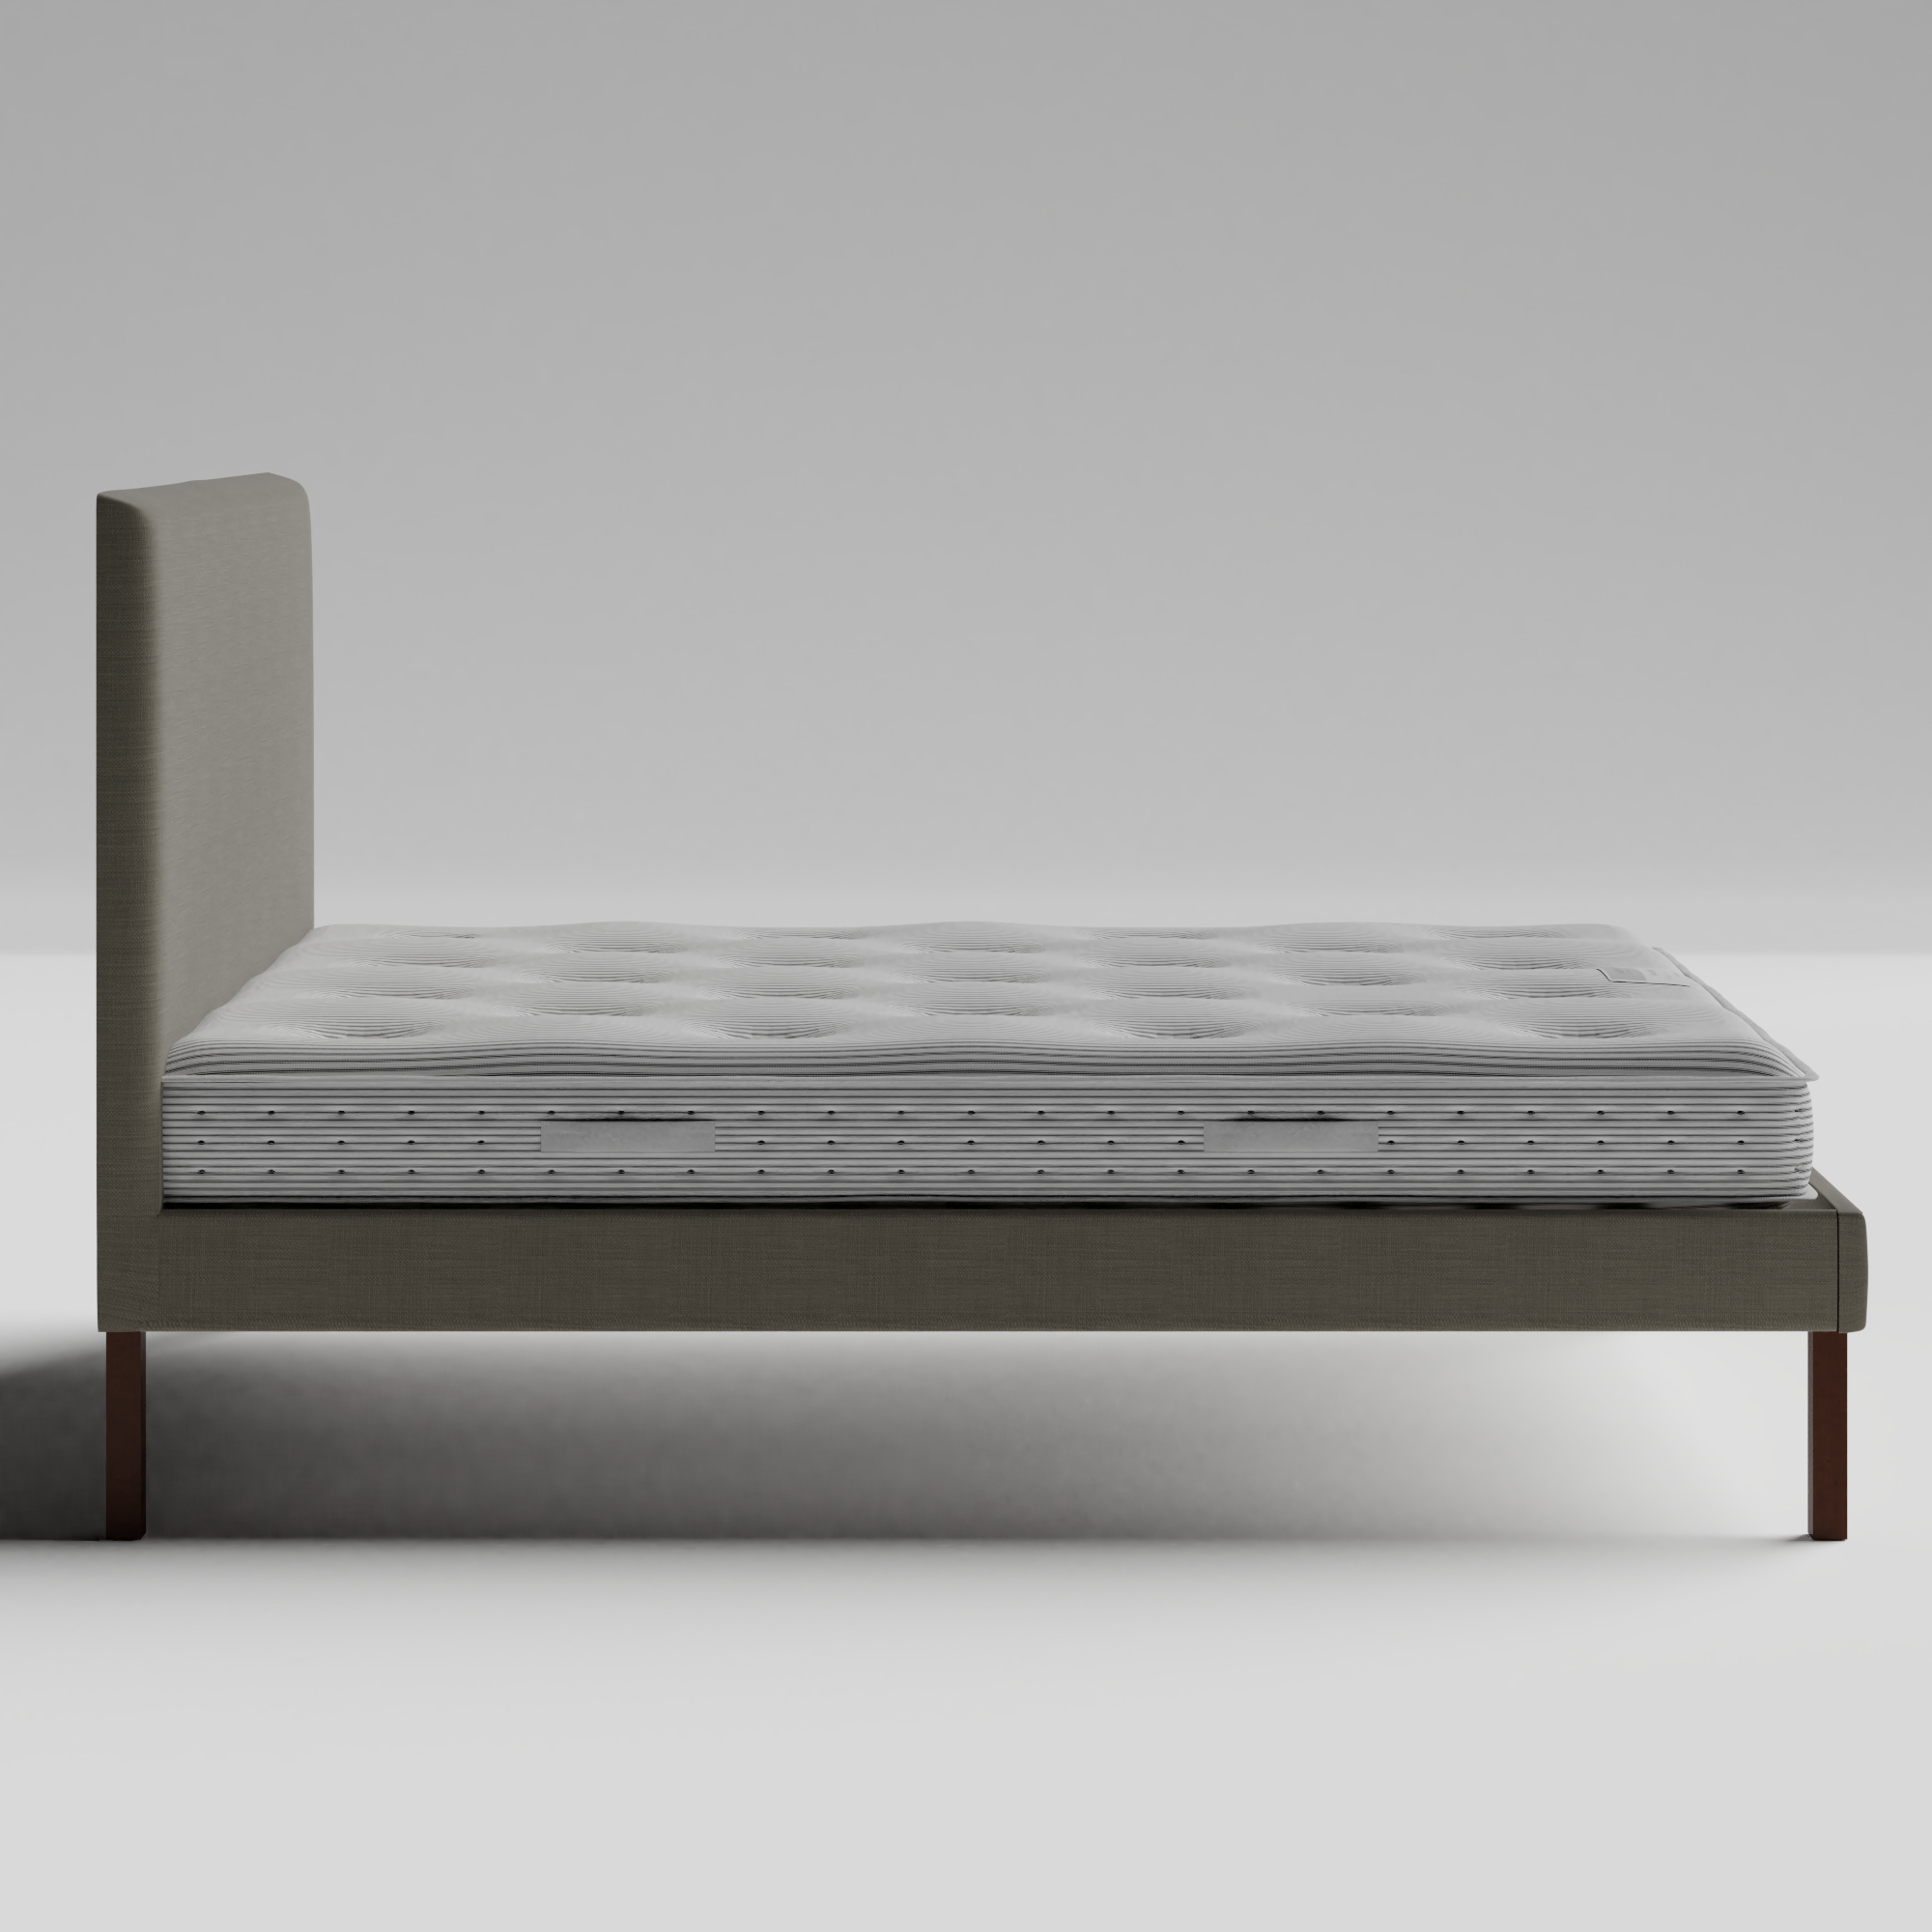 Misaki Upholstered upholstered bed in grey fabric with Juno mattress